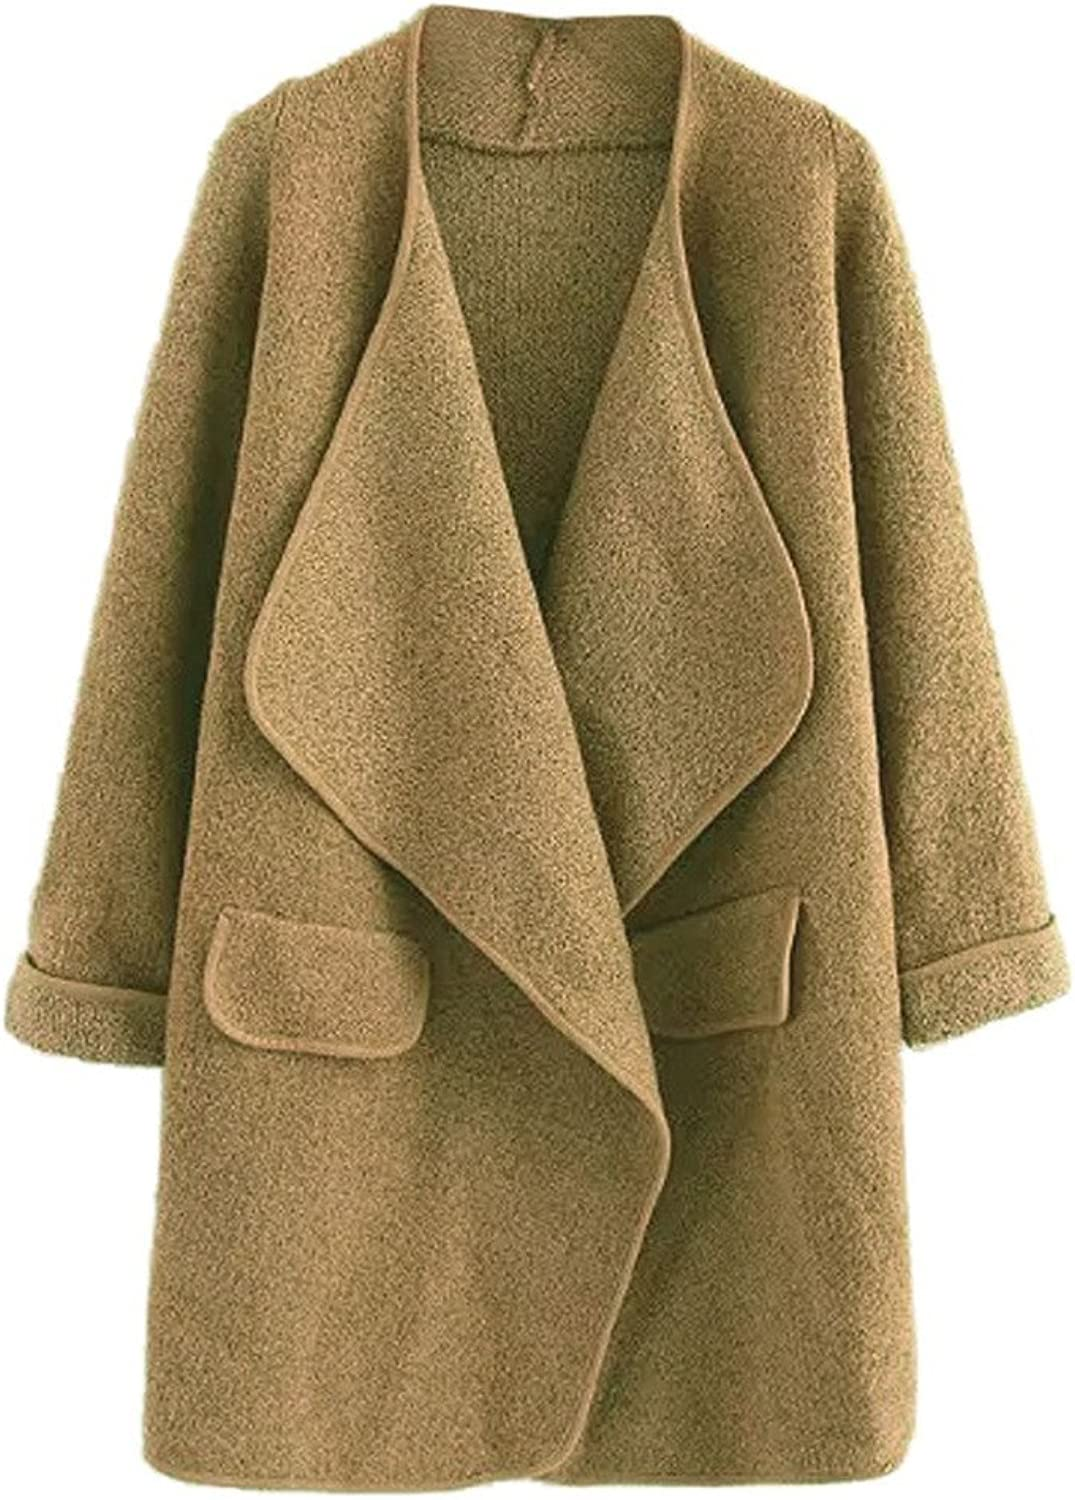 CHARLES RICHARDS CR Women's Lapel Open Front Pocket Detail Long Sleeve Knit Coat